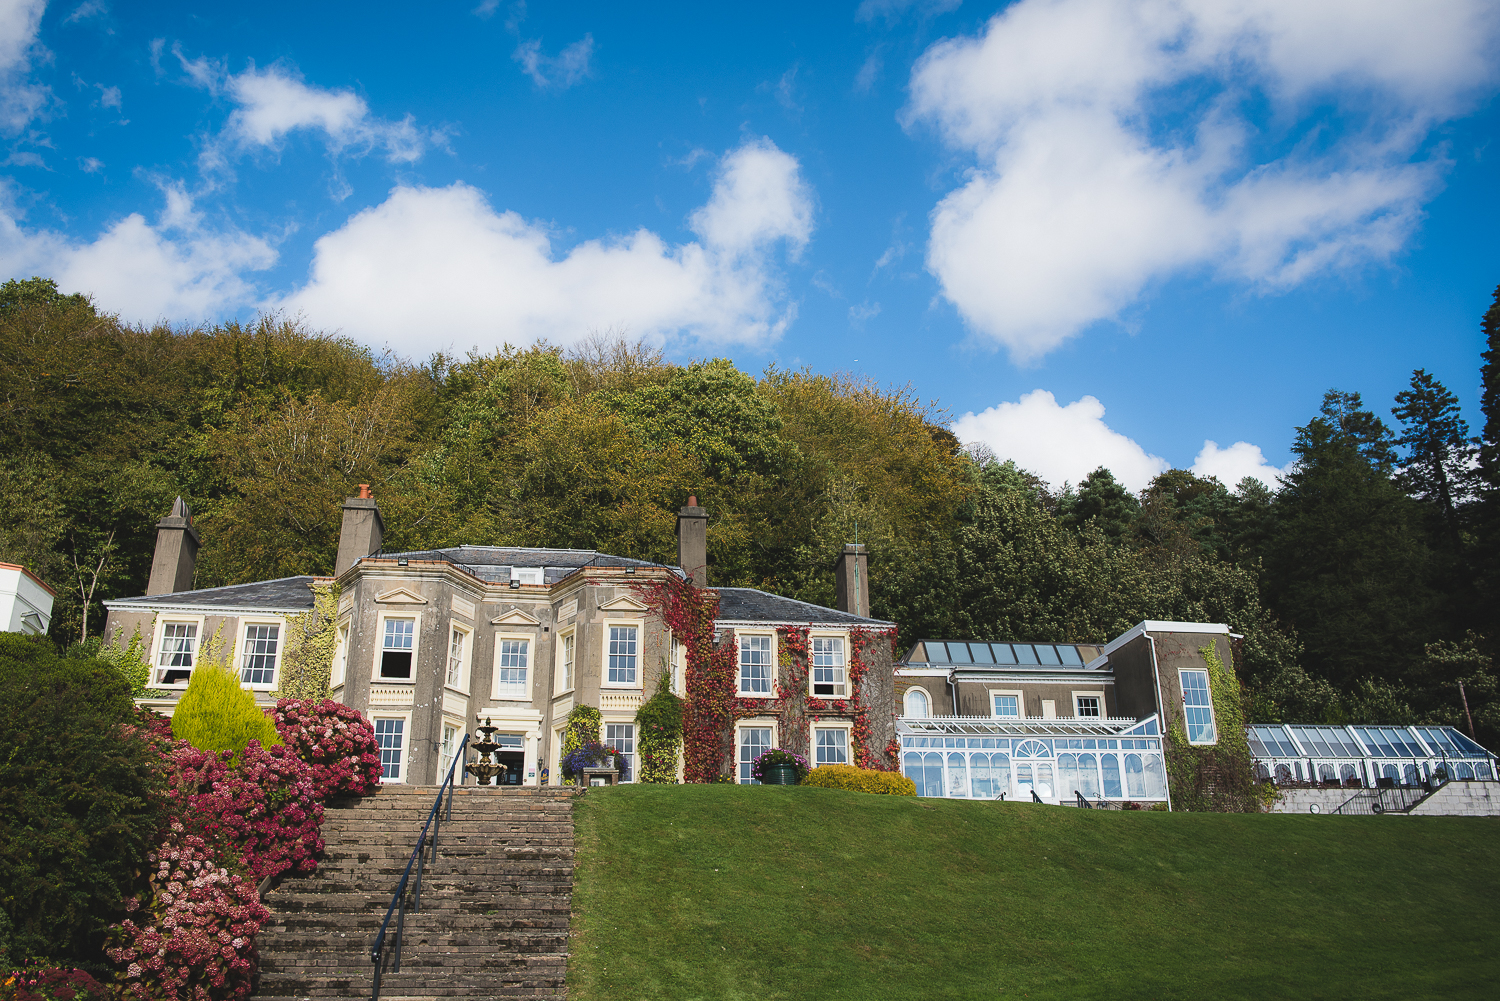 cardiff-wedding-photographer-new-house-country-hotel-south-wales-11.jpg